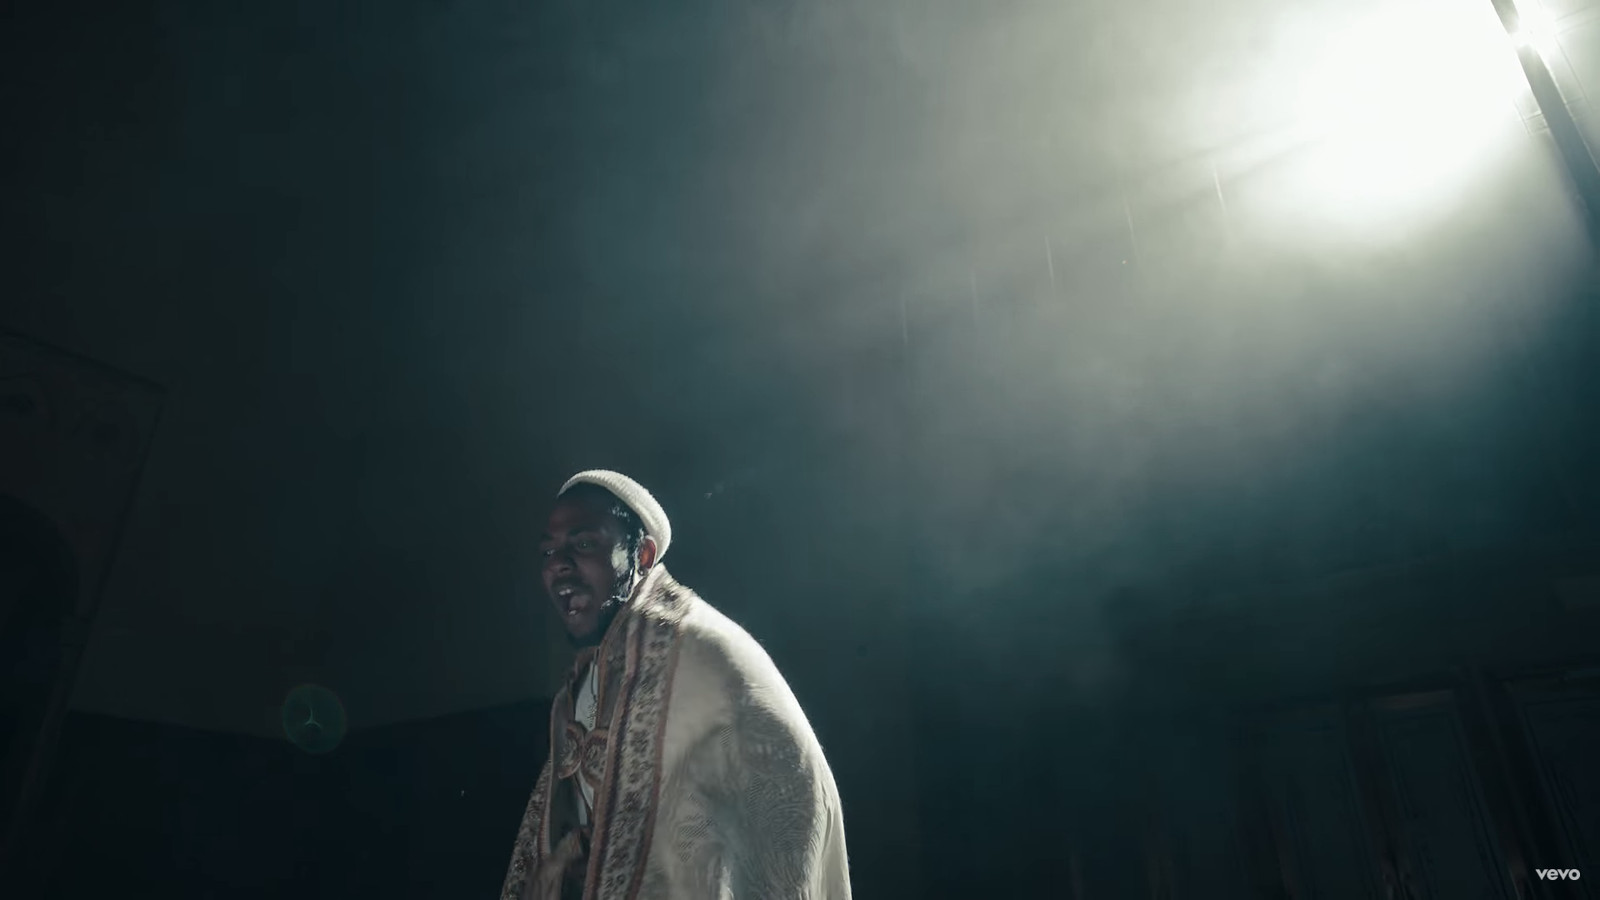 One Video Humble By Kendrick Lamar The Verge